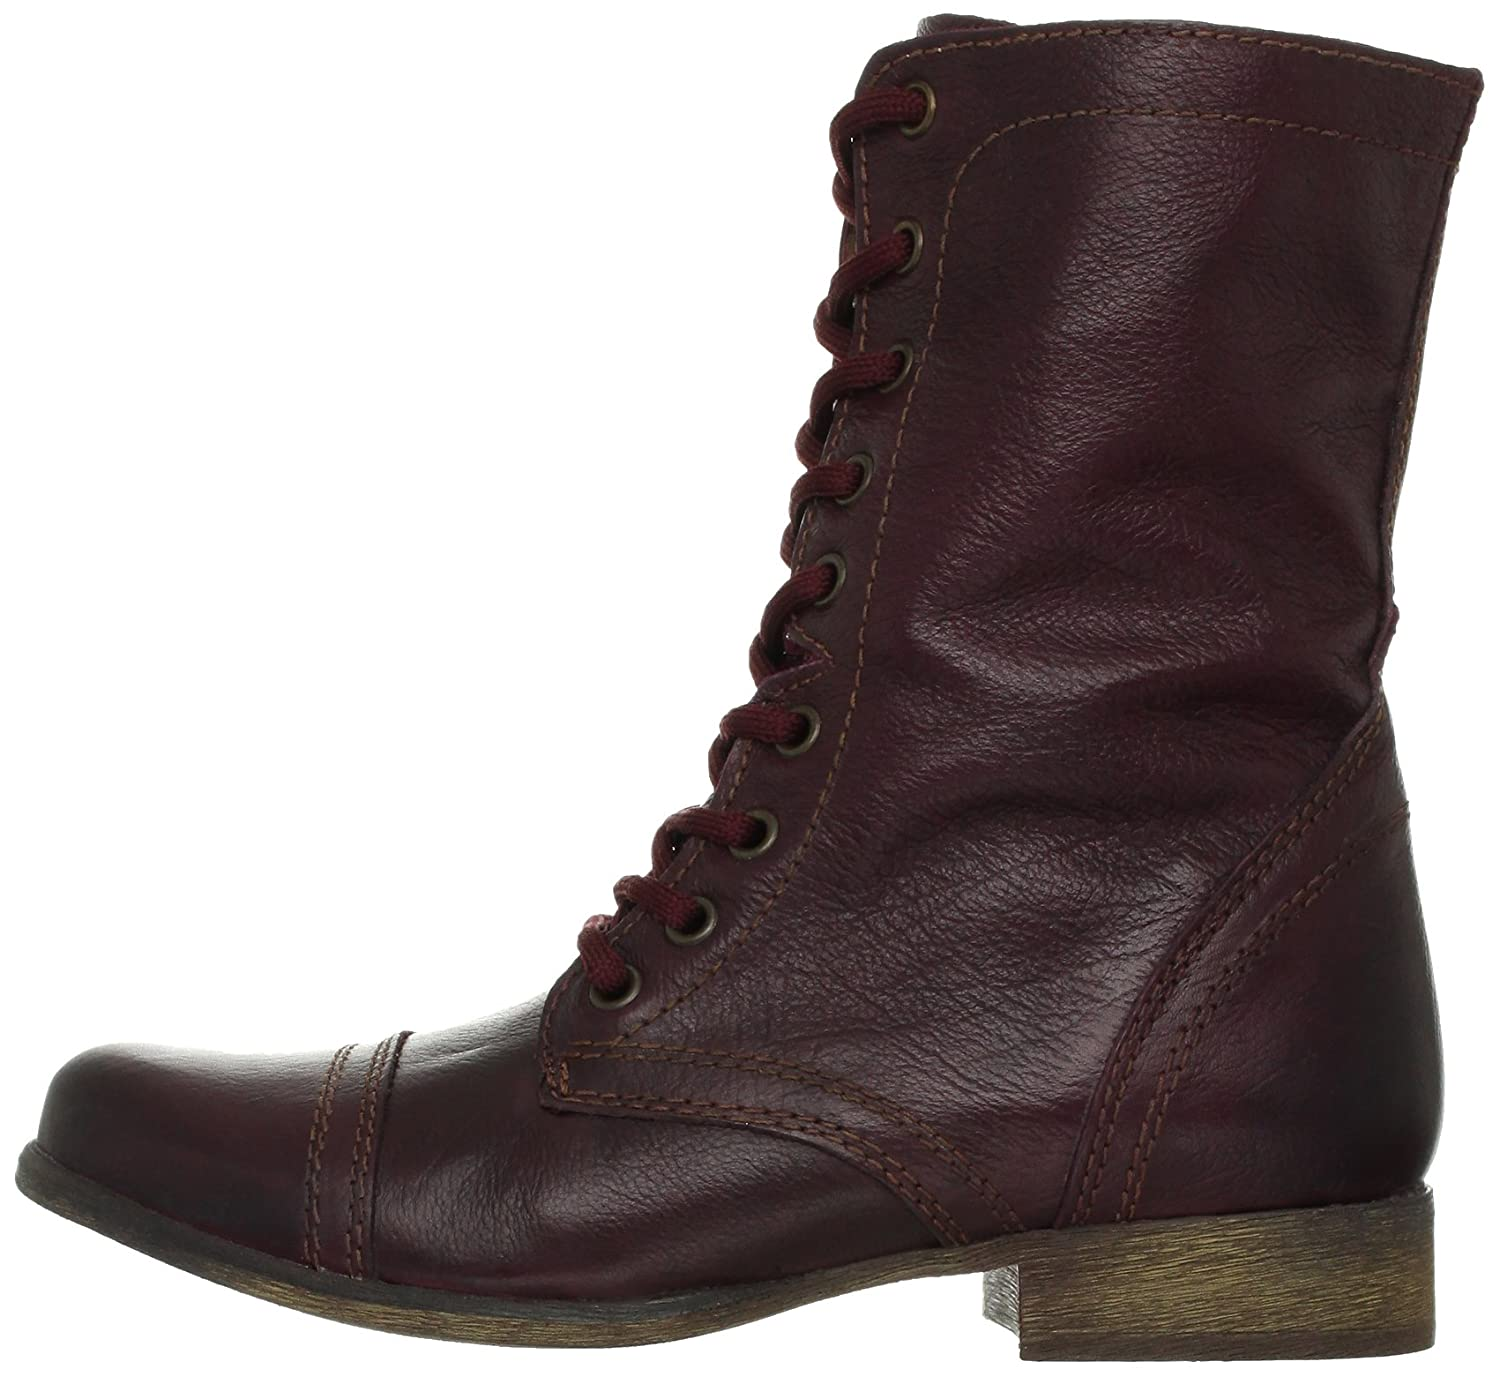 Steve Madden Women's Troopa Lace-Up Boot B00B09OQNM 7.5 B(M) US|Wine Leather